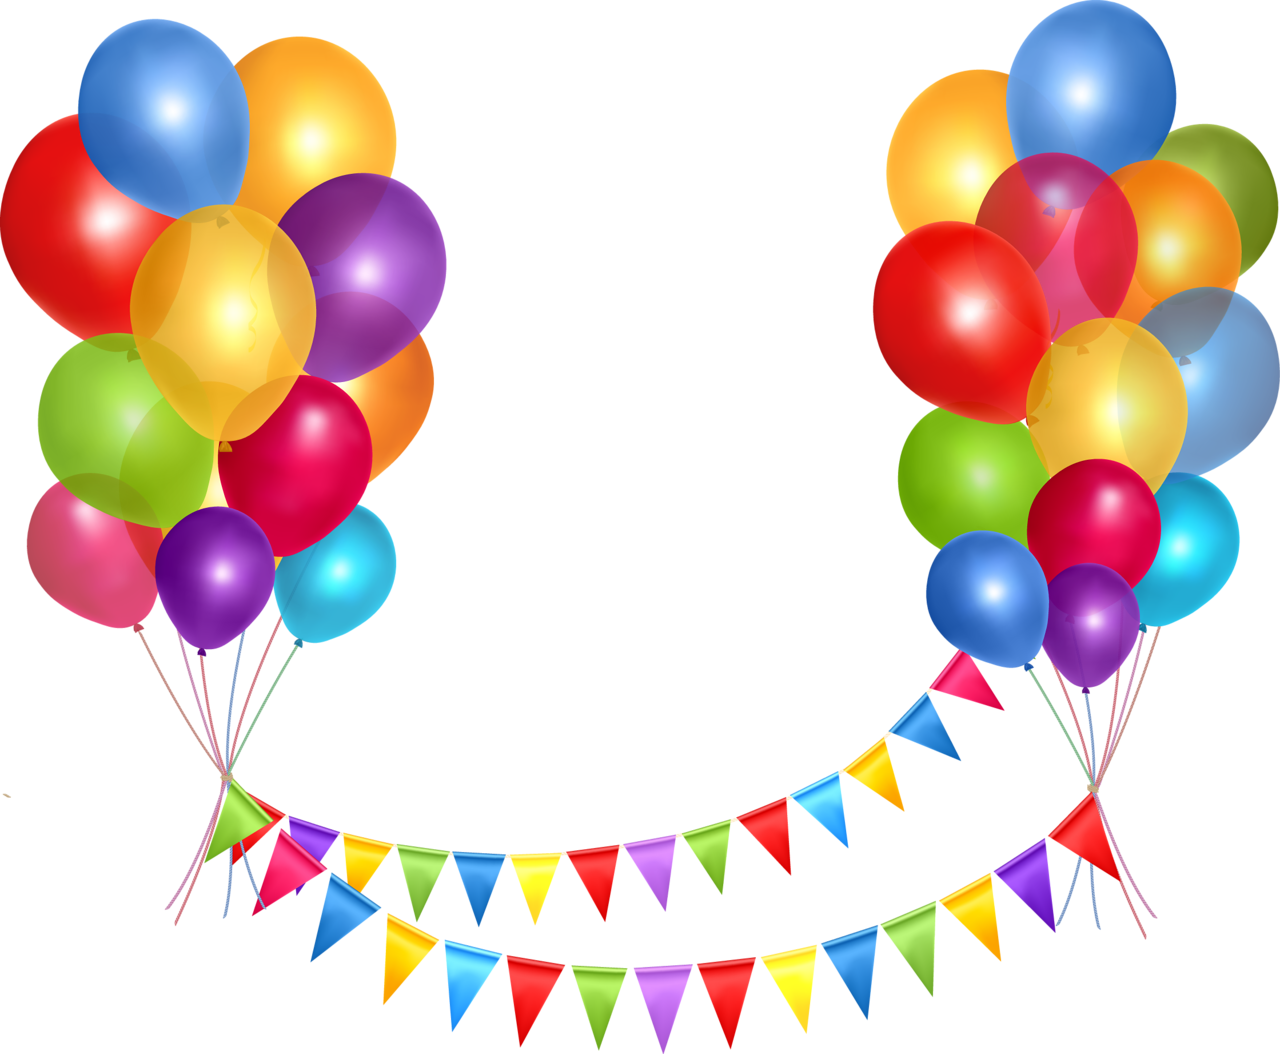 banners craft and. Celebrate clipart banner